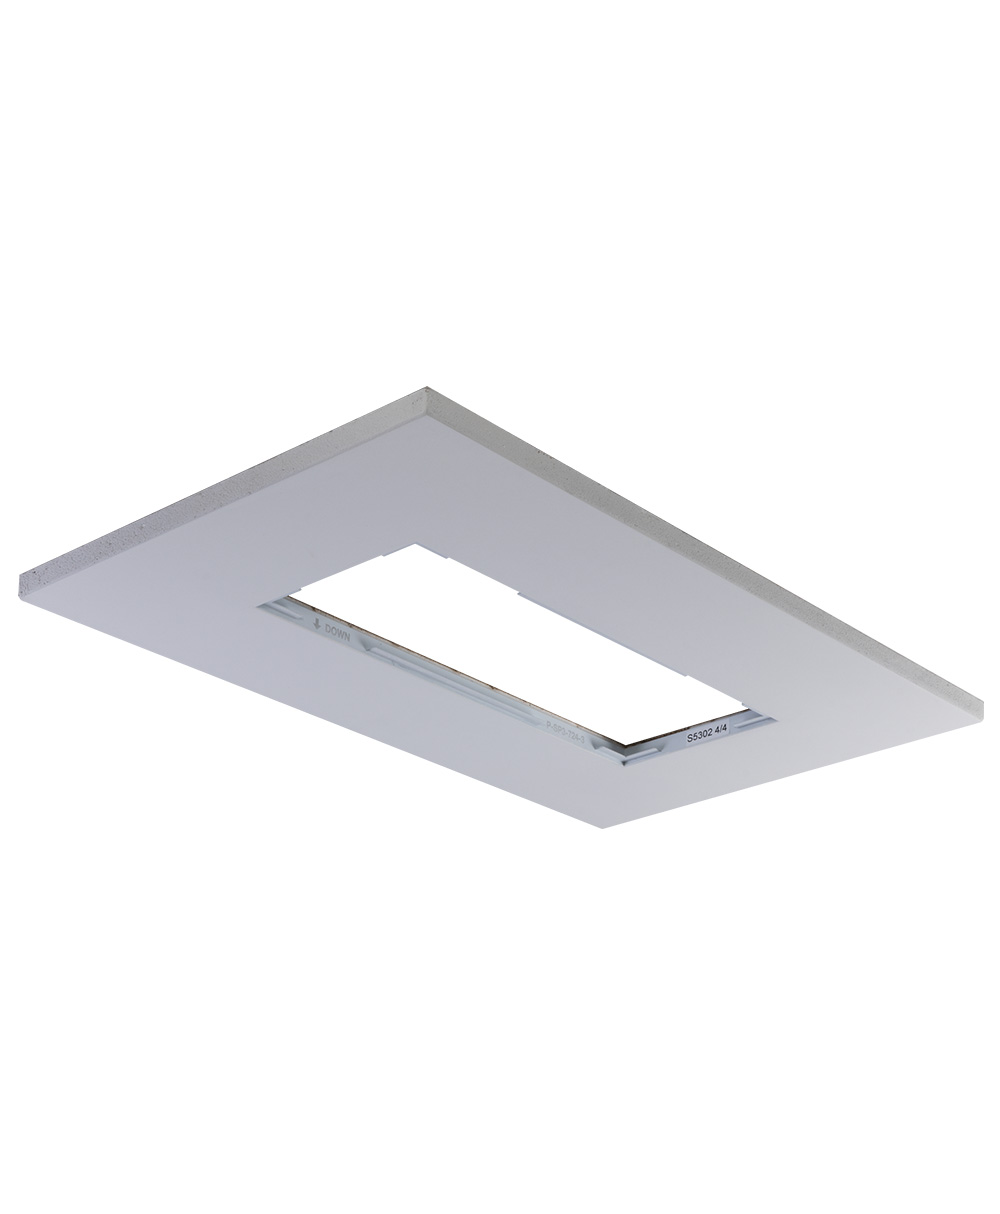 Sigma 3 3-Light Linear Pulldown LED Fixture